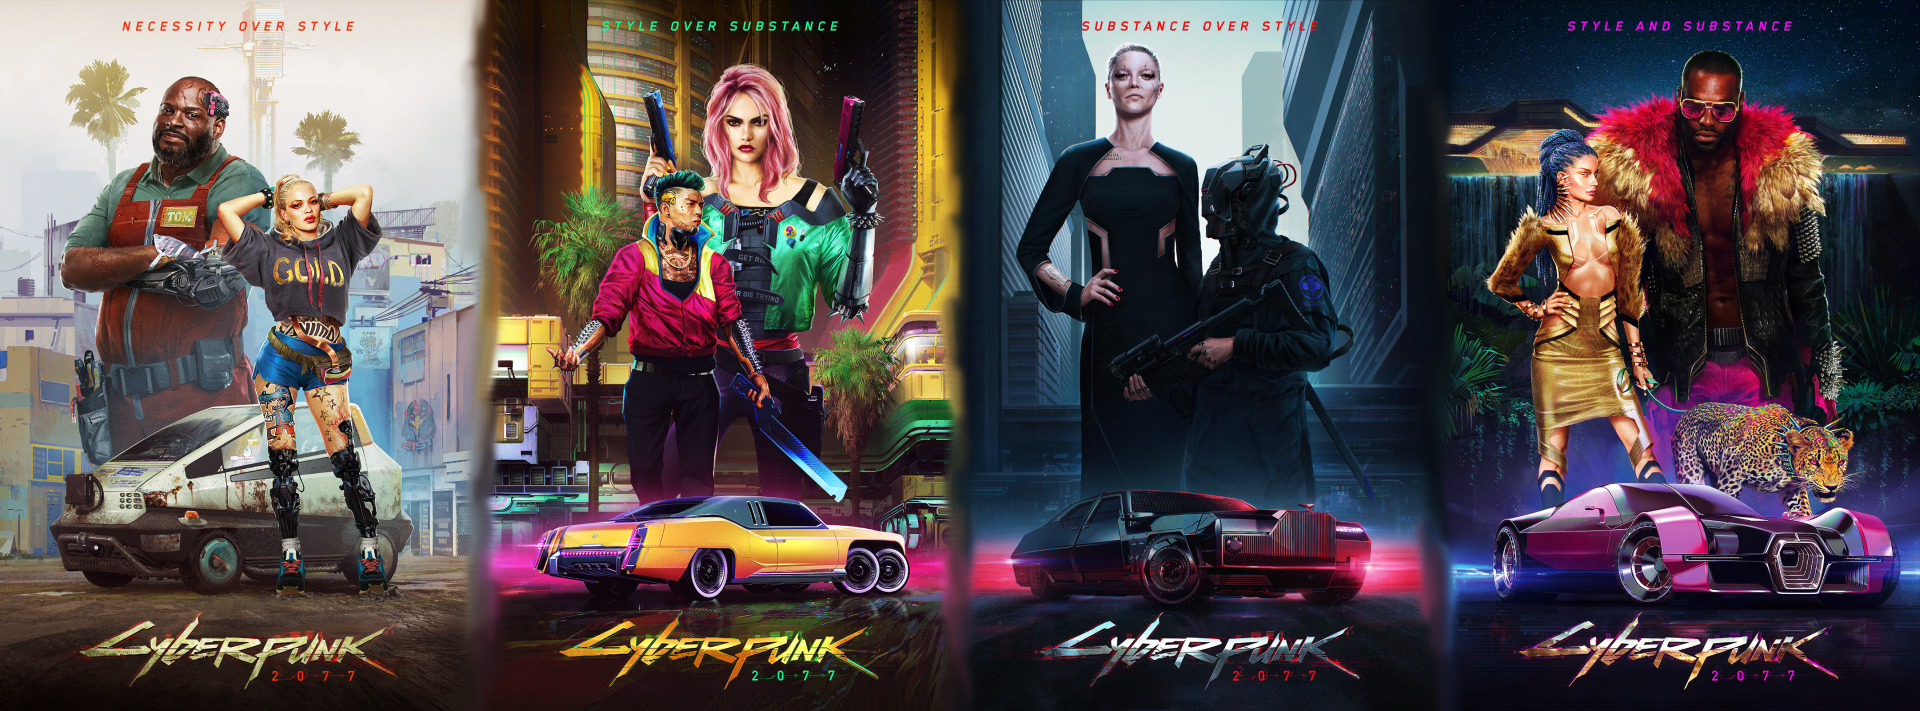 CyberPunk 2077 Posters.png